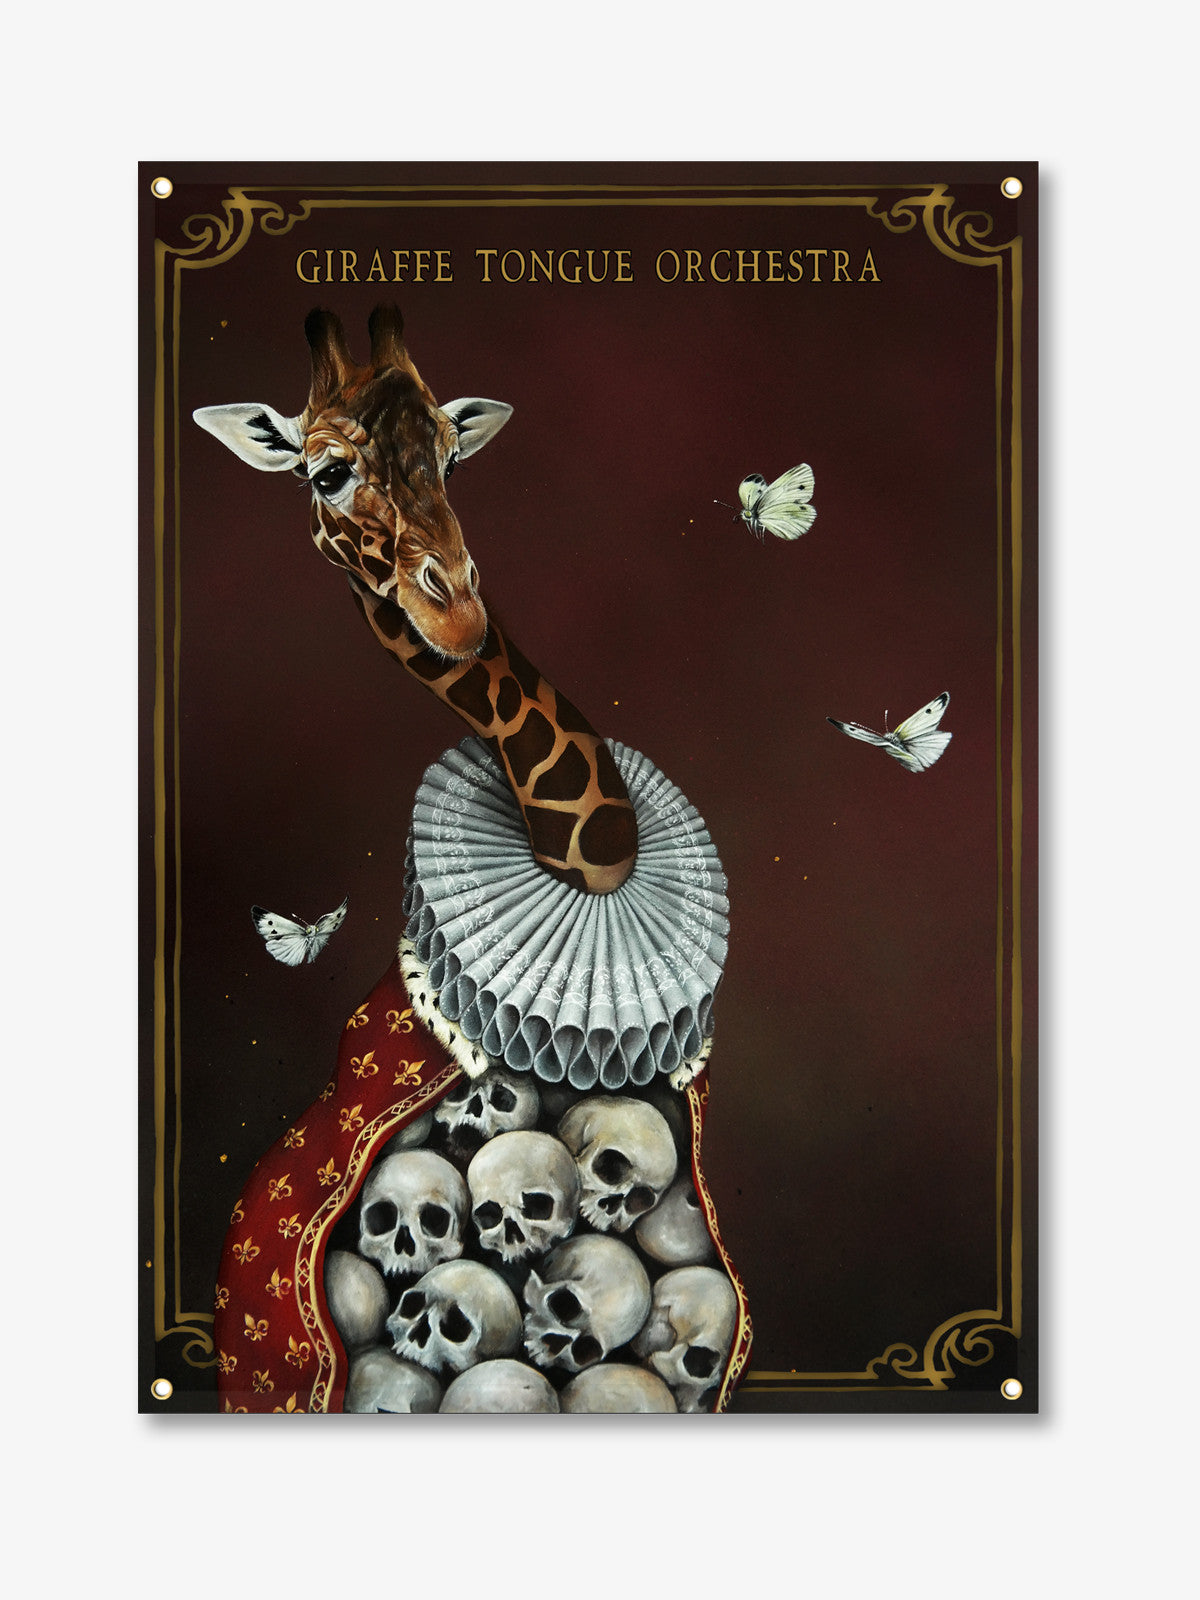 Giraffe Tongue Orchestra - Wall Flag + Digital Album Download - Merch Limited